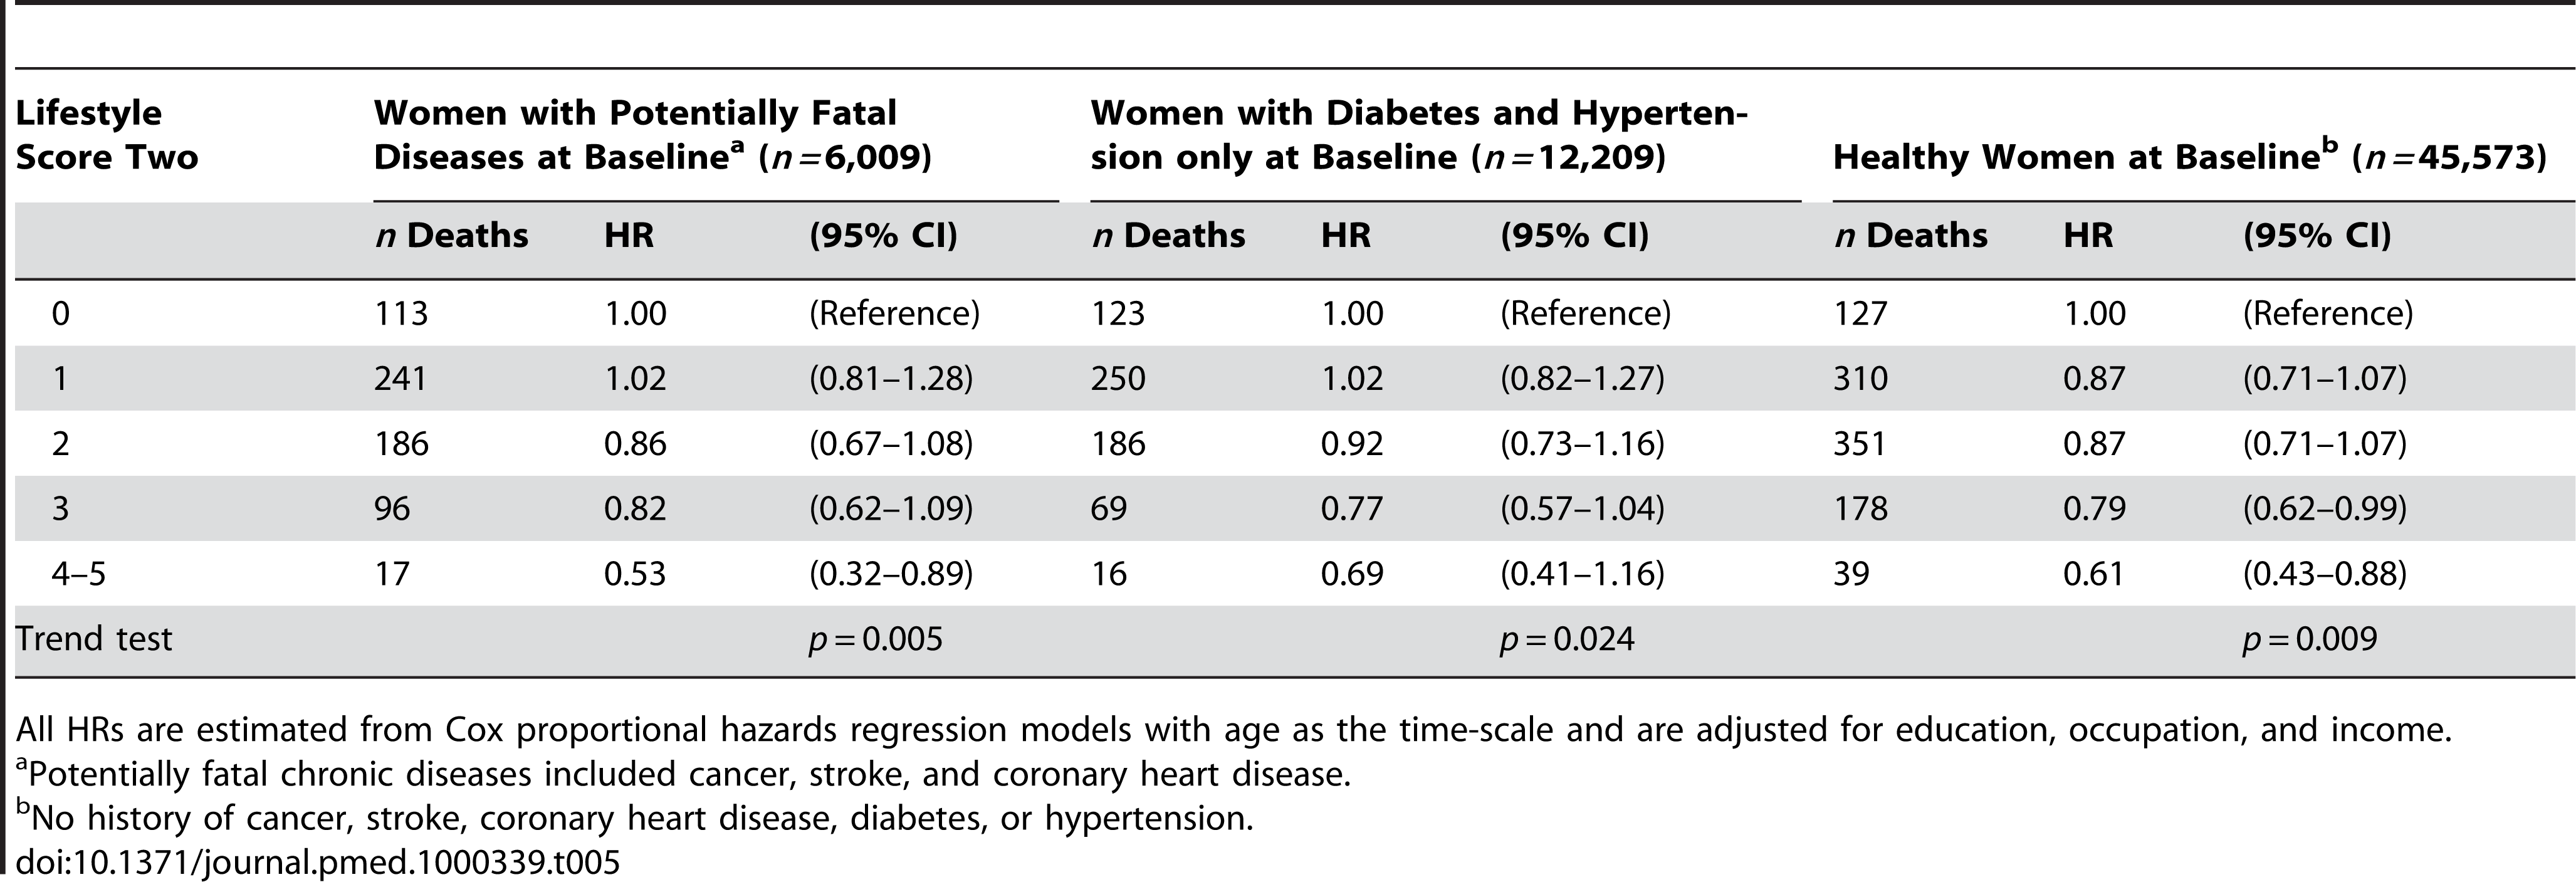 Healthy lifestyle score two and risk of all-cause mortality among nonsmoking and nondrinking women aged 40–70 y by chronic disease status at baseline, Shanghai Women's Health Study, 1996–2007.